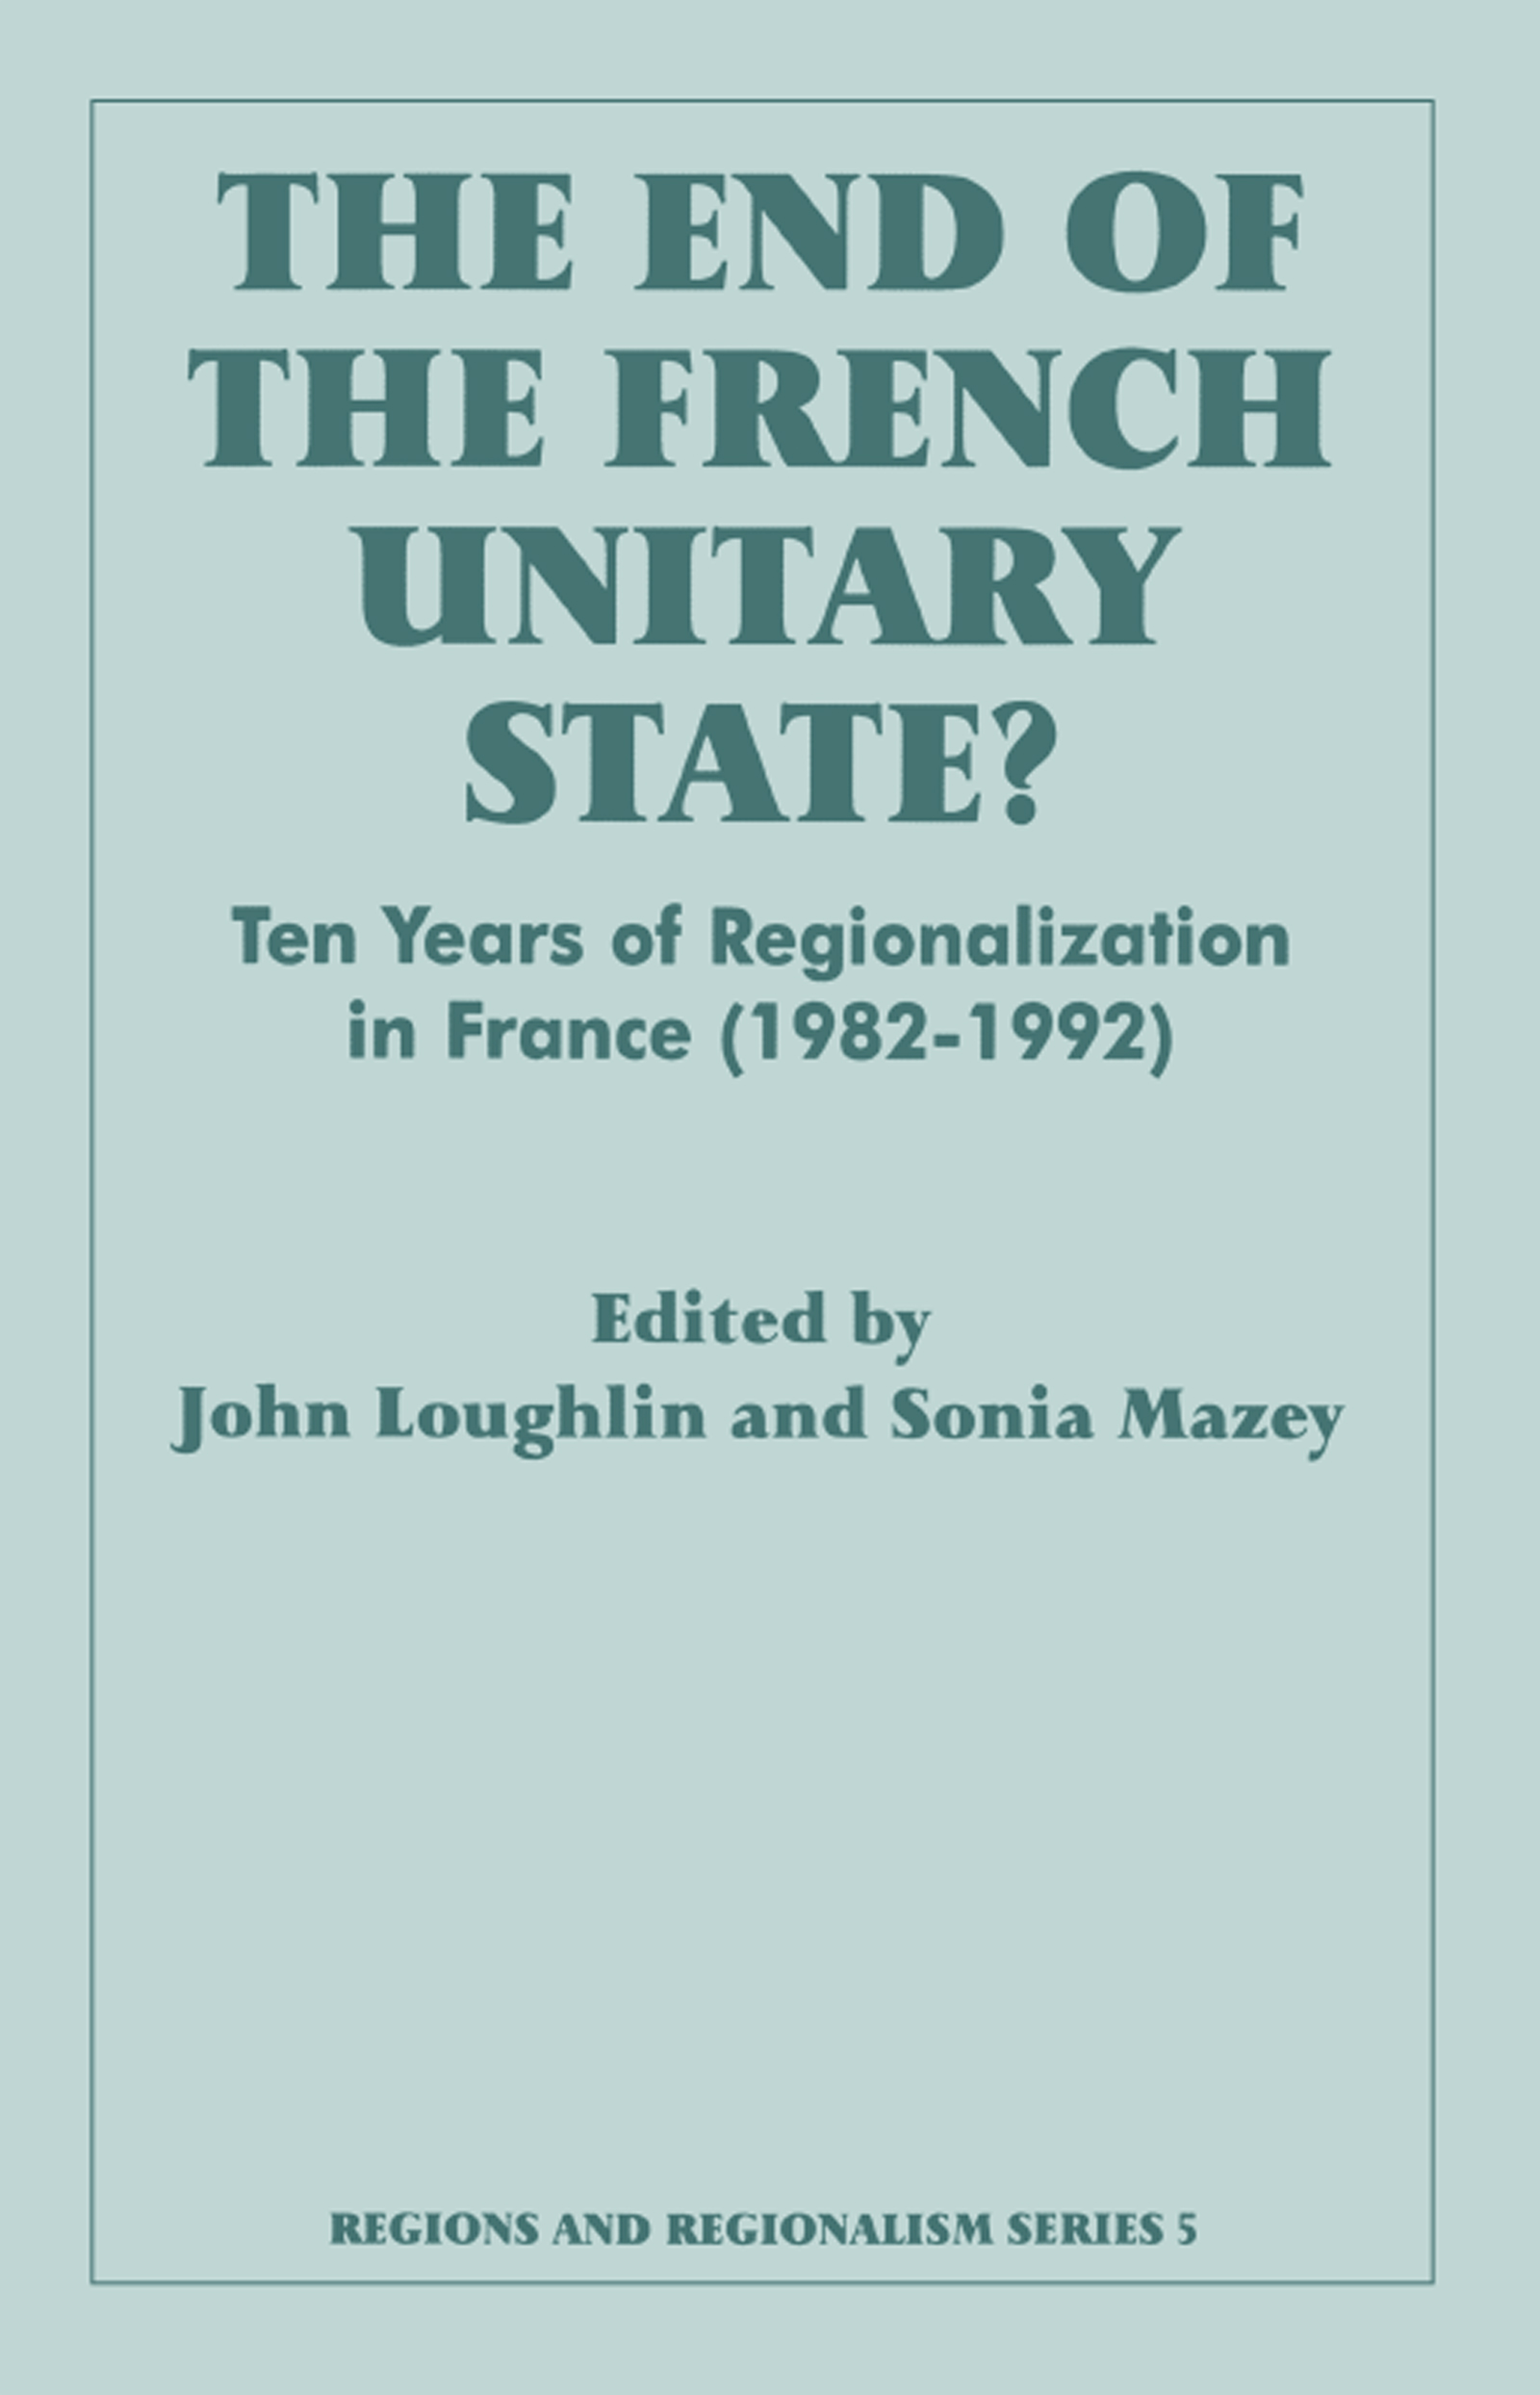 The End of the French Unitary State?: Ten years of Regionalization in France 1982-1992 book cover